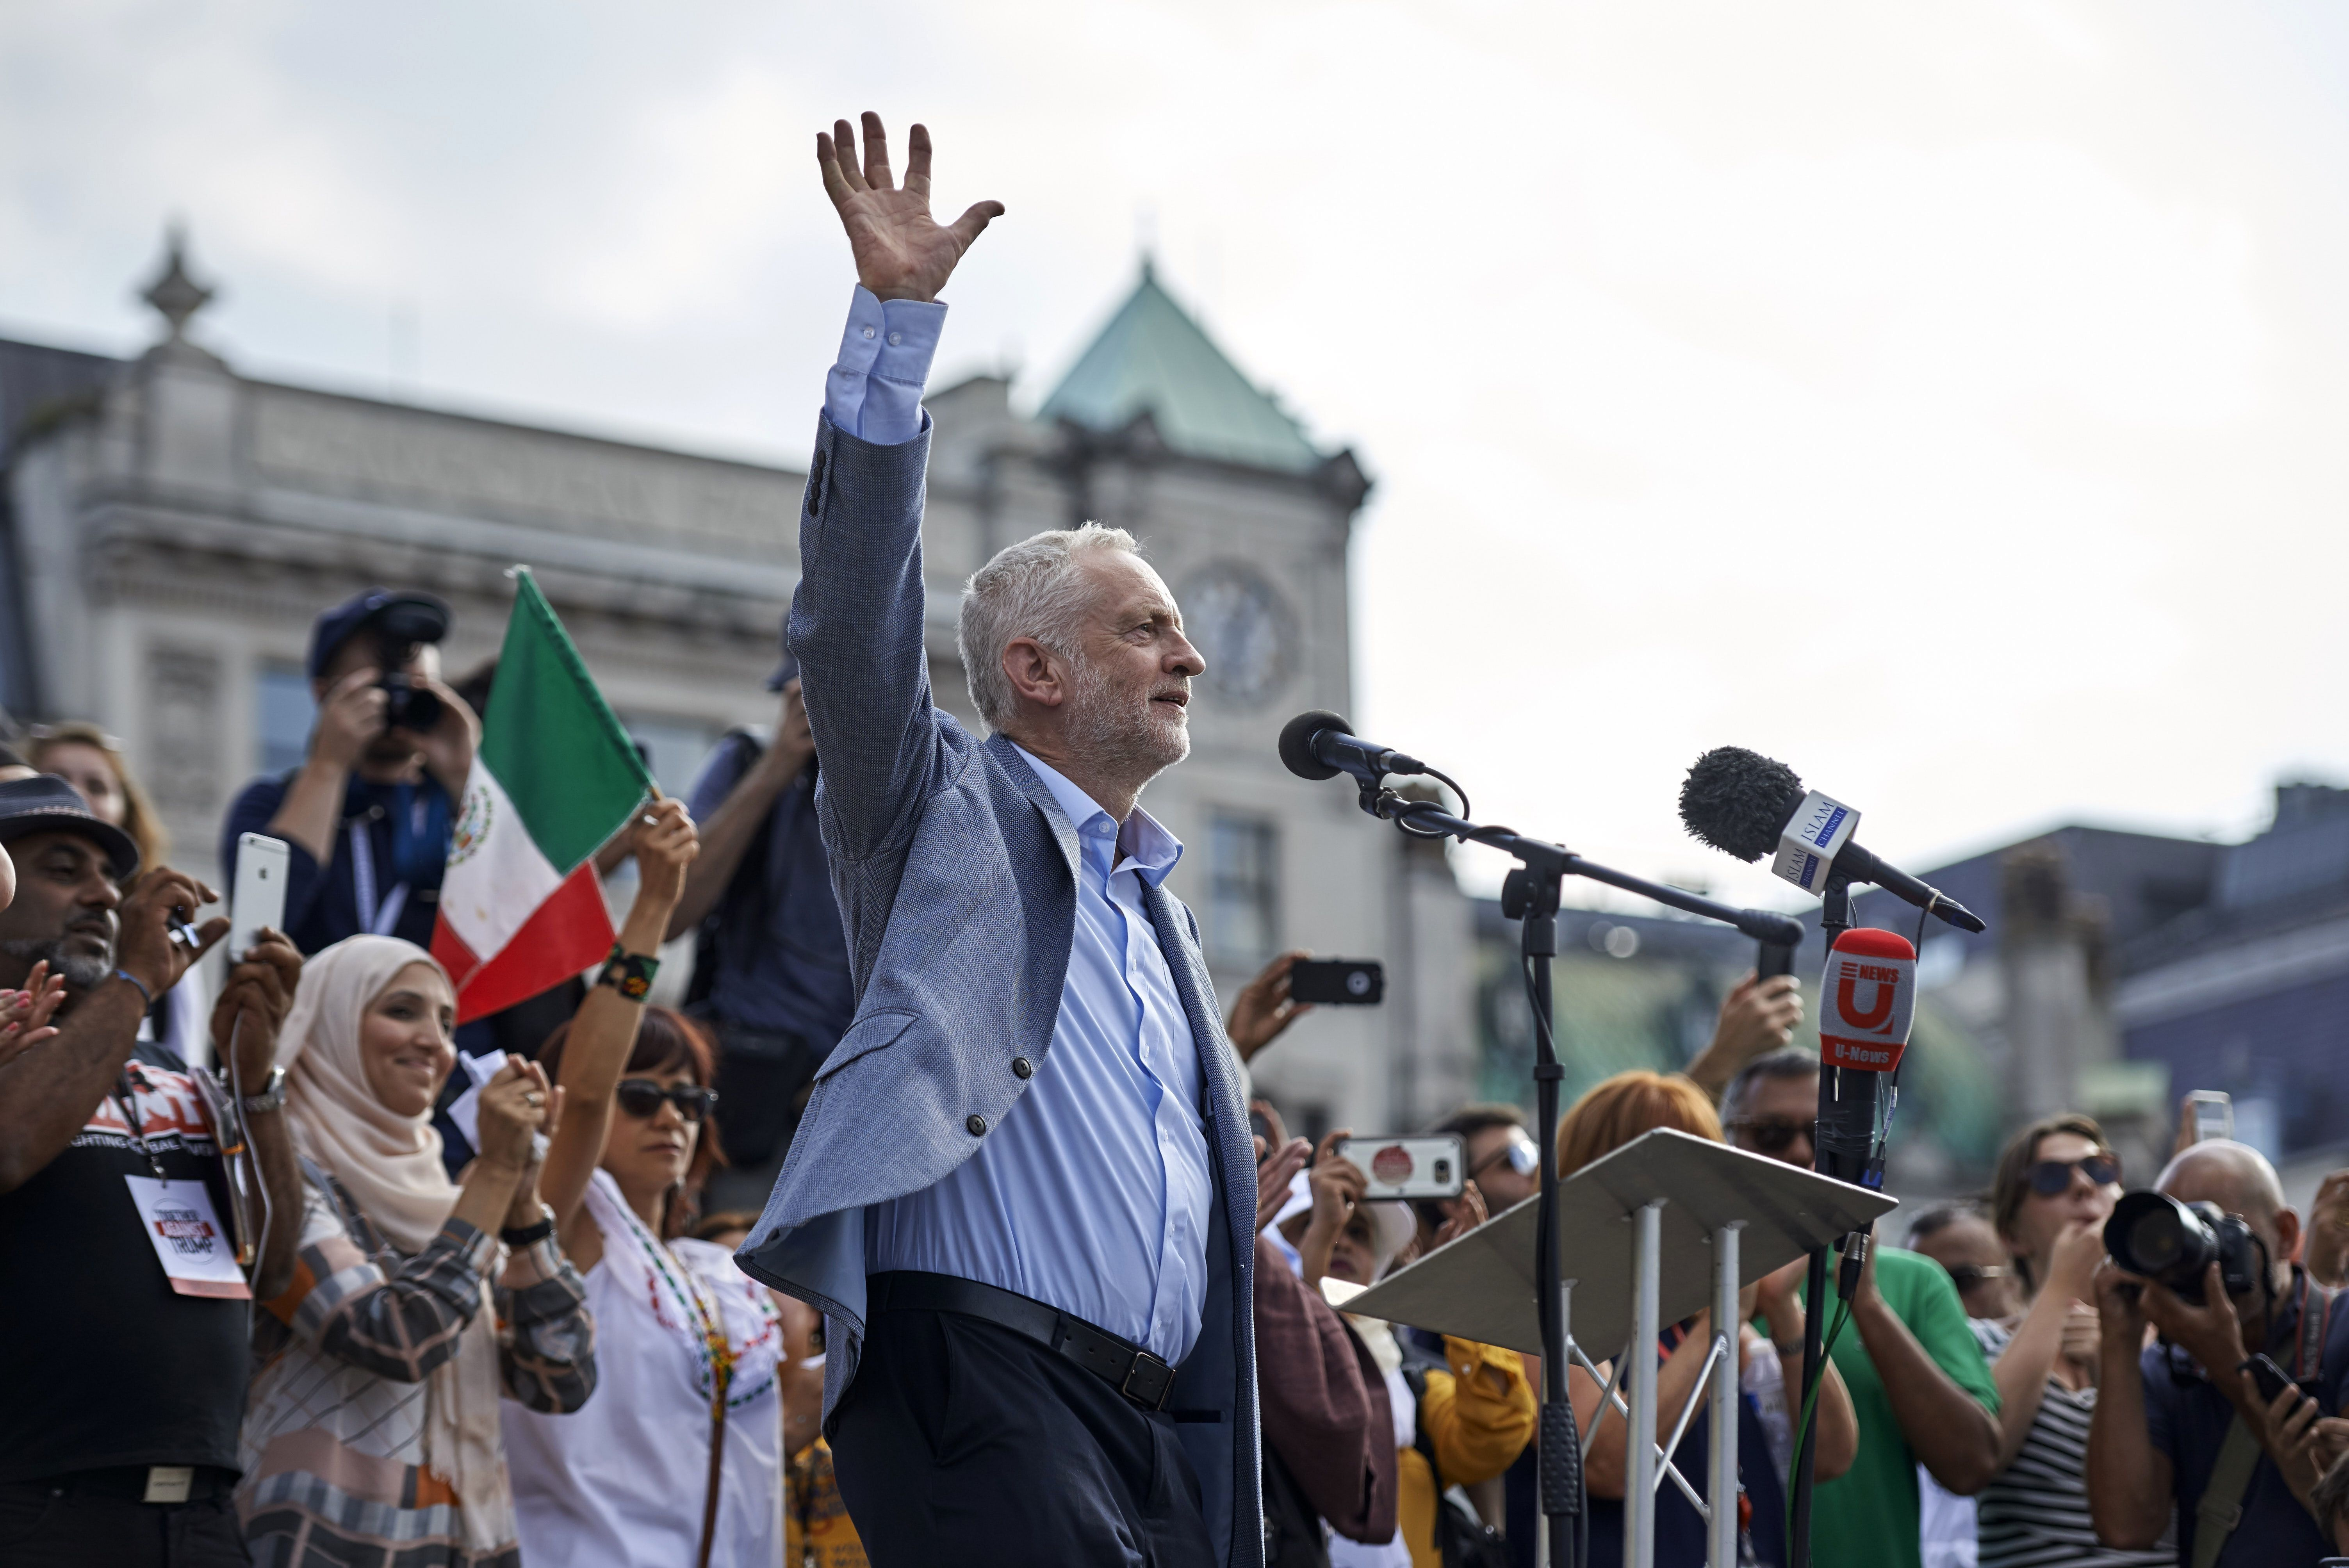 Daily Mail In 'Spectacular Self-Own' After Describing Corbyn As Leader Of Anti-Trump 'Rent-a-Mob'